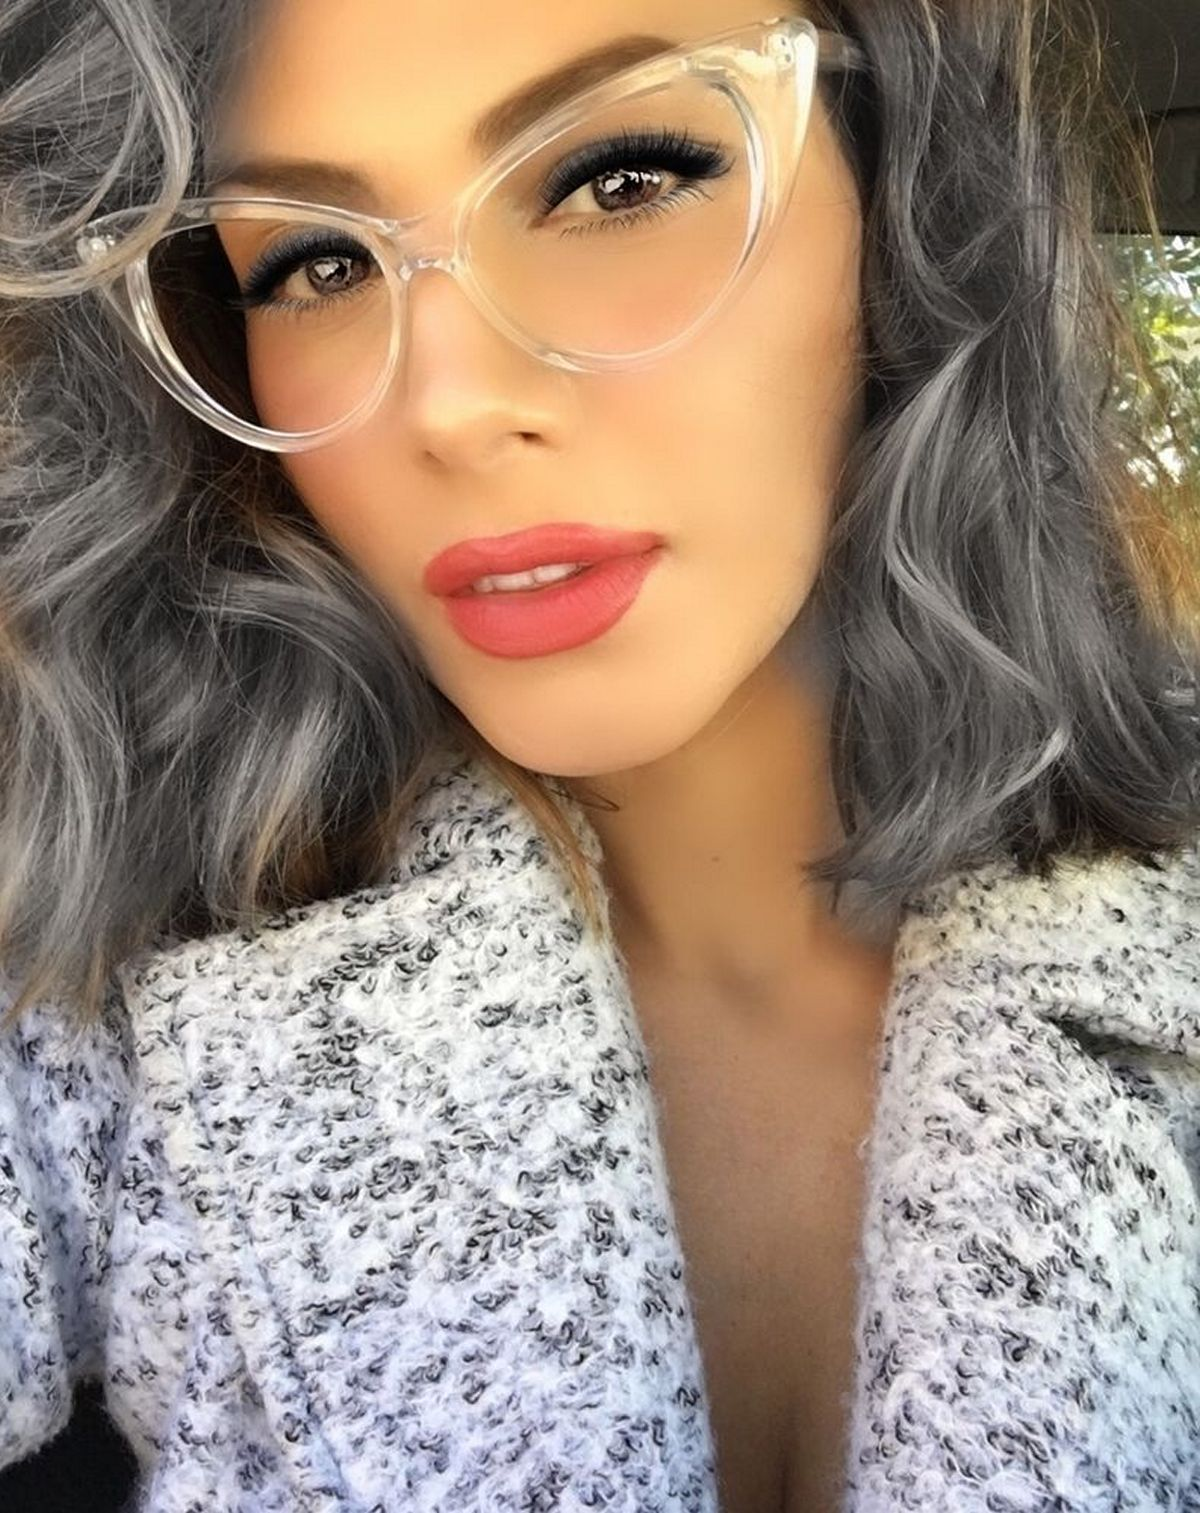 ec00e31ee8 Finest 51 Clear Glasses Frame for Women s Fashion Ideas